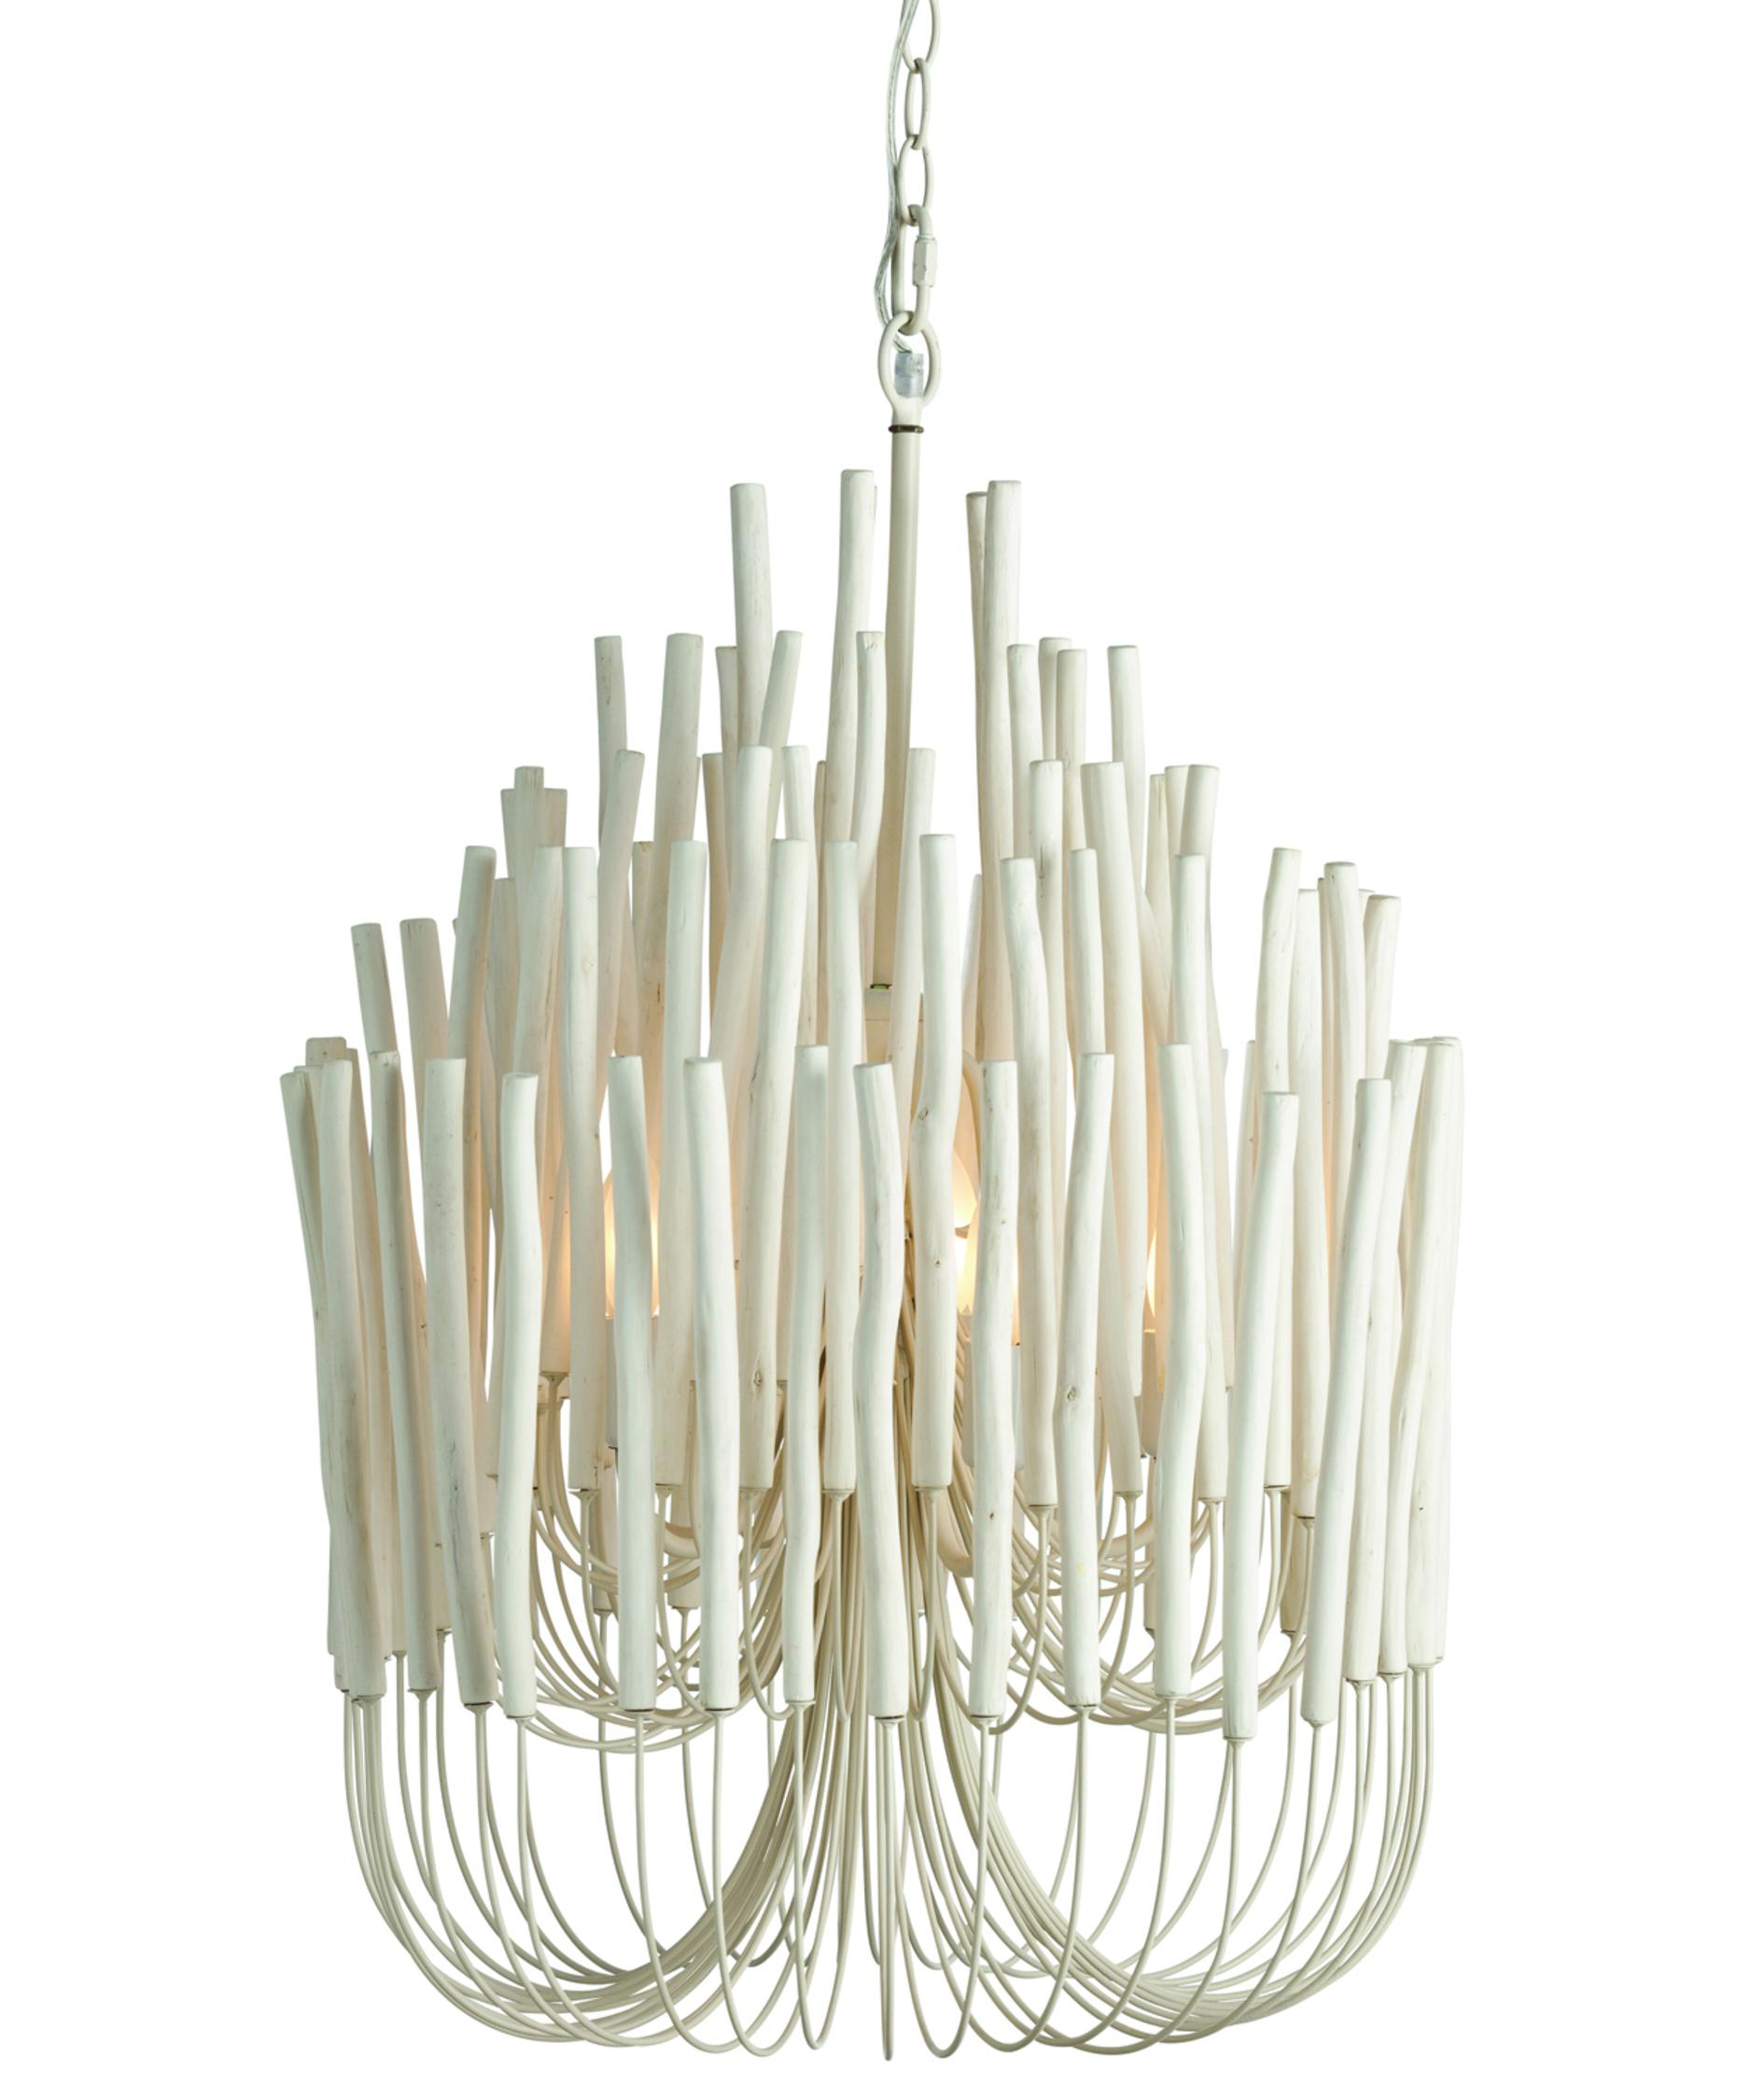 arteriors home  tilda  inch wide  light large pendant  - shown in whitewashed wood finish